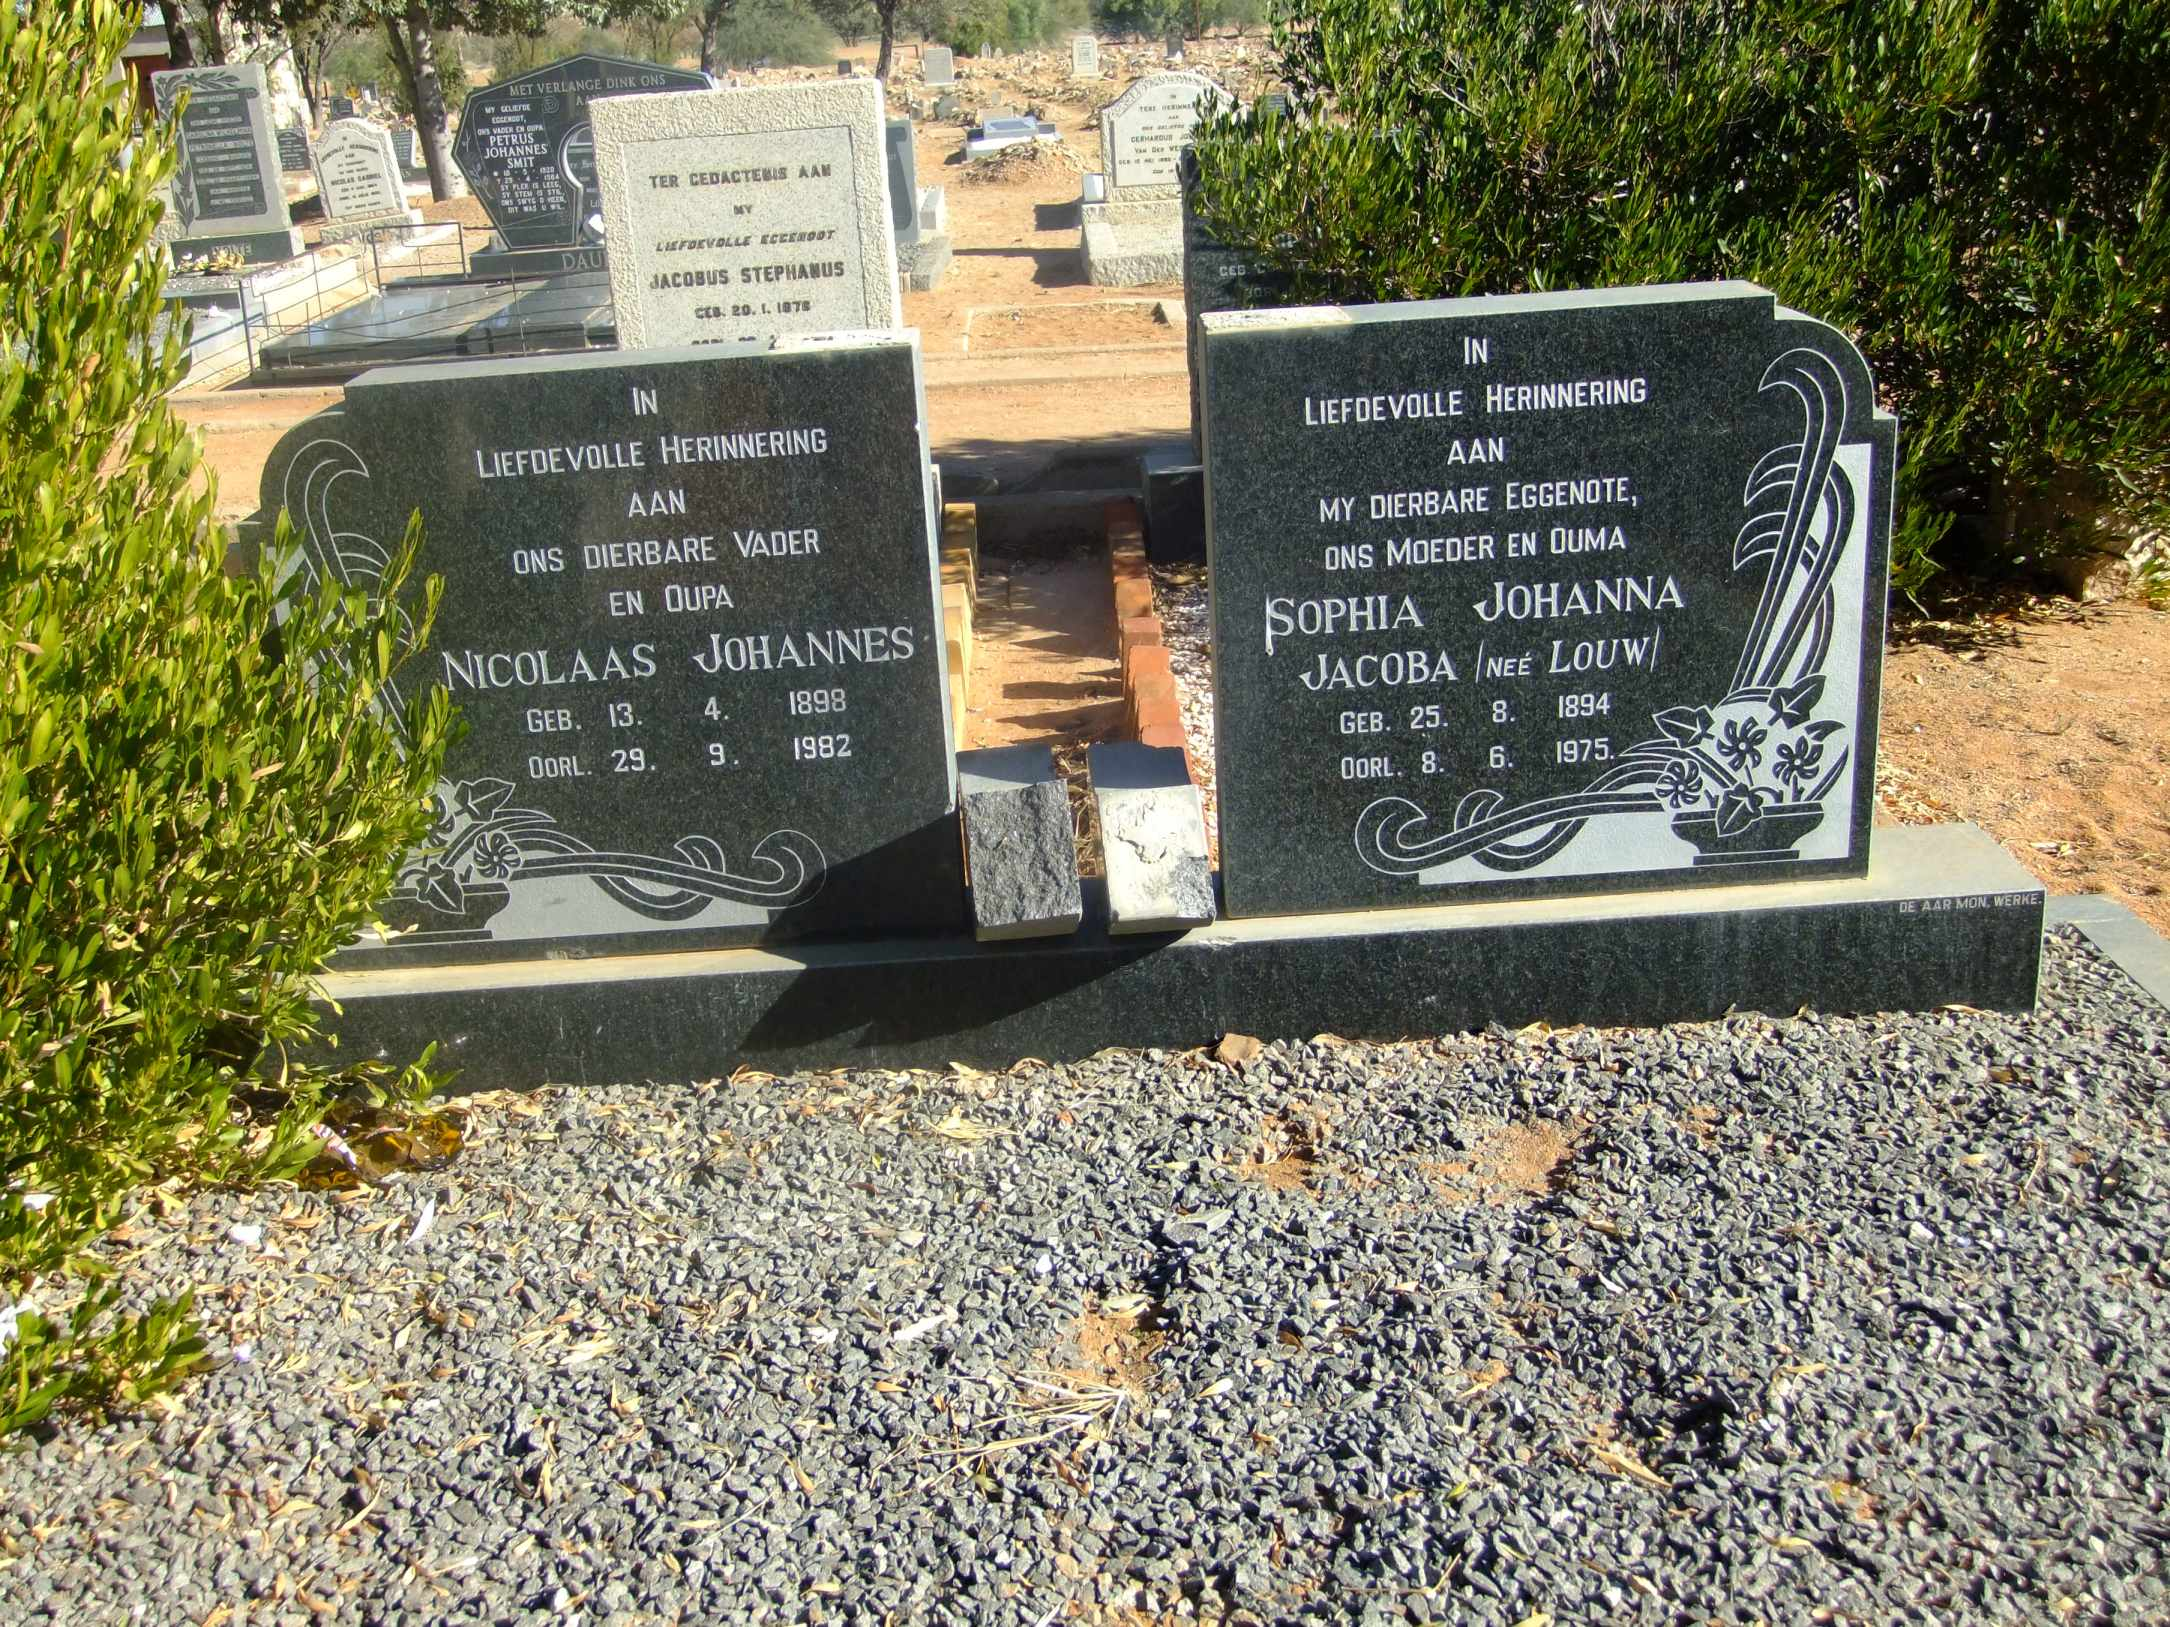 Unknown, Nicolaas Johannes born 13 April 1898 died 29 September 1982 and Sophoa Johanna Jacoba nee Louw born 25 August 1894 died 08 June 1975